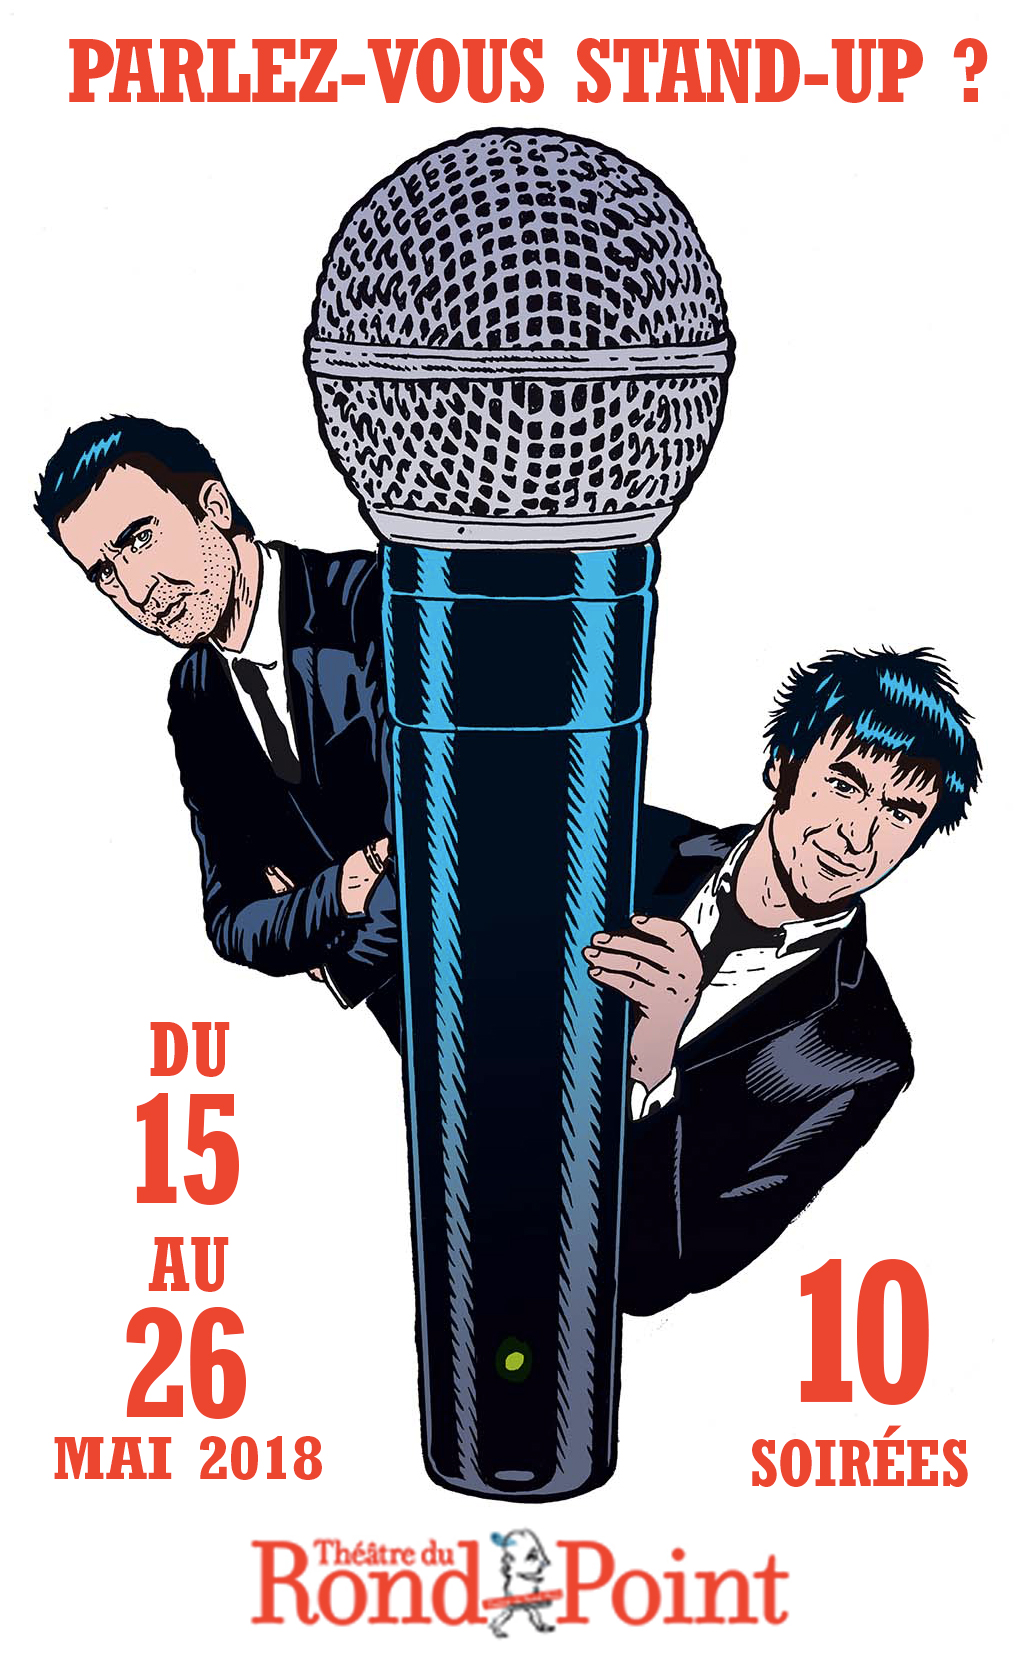 Parlez-vous stand-up ?